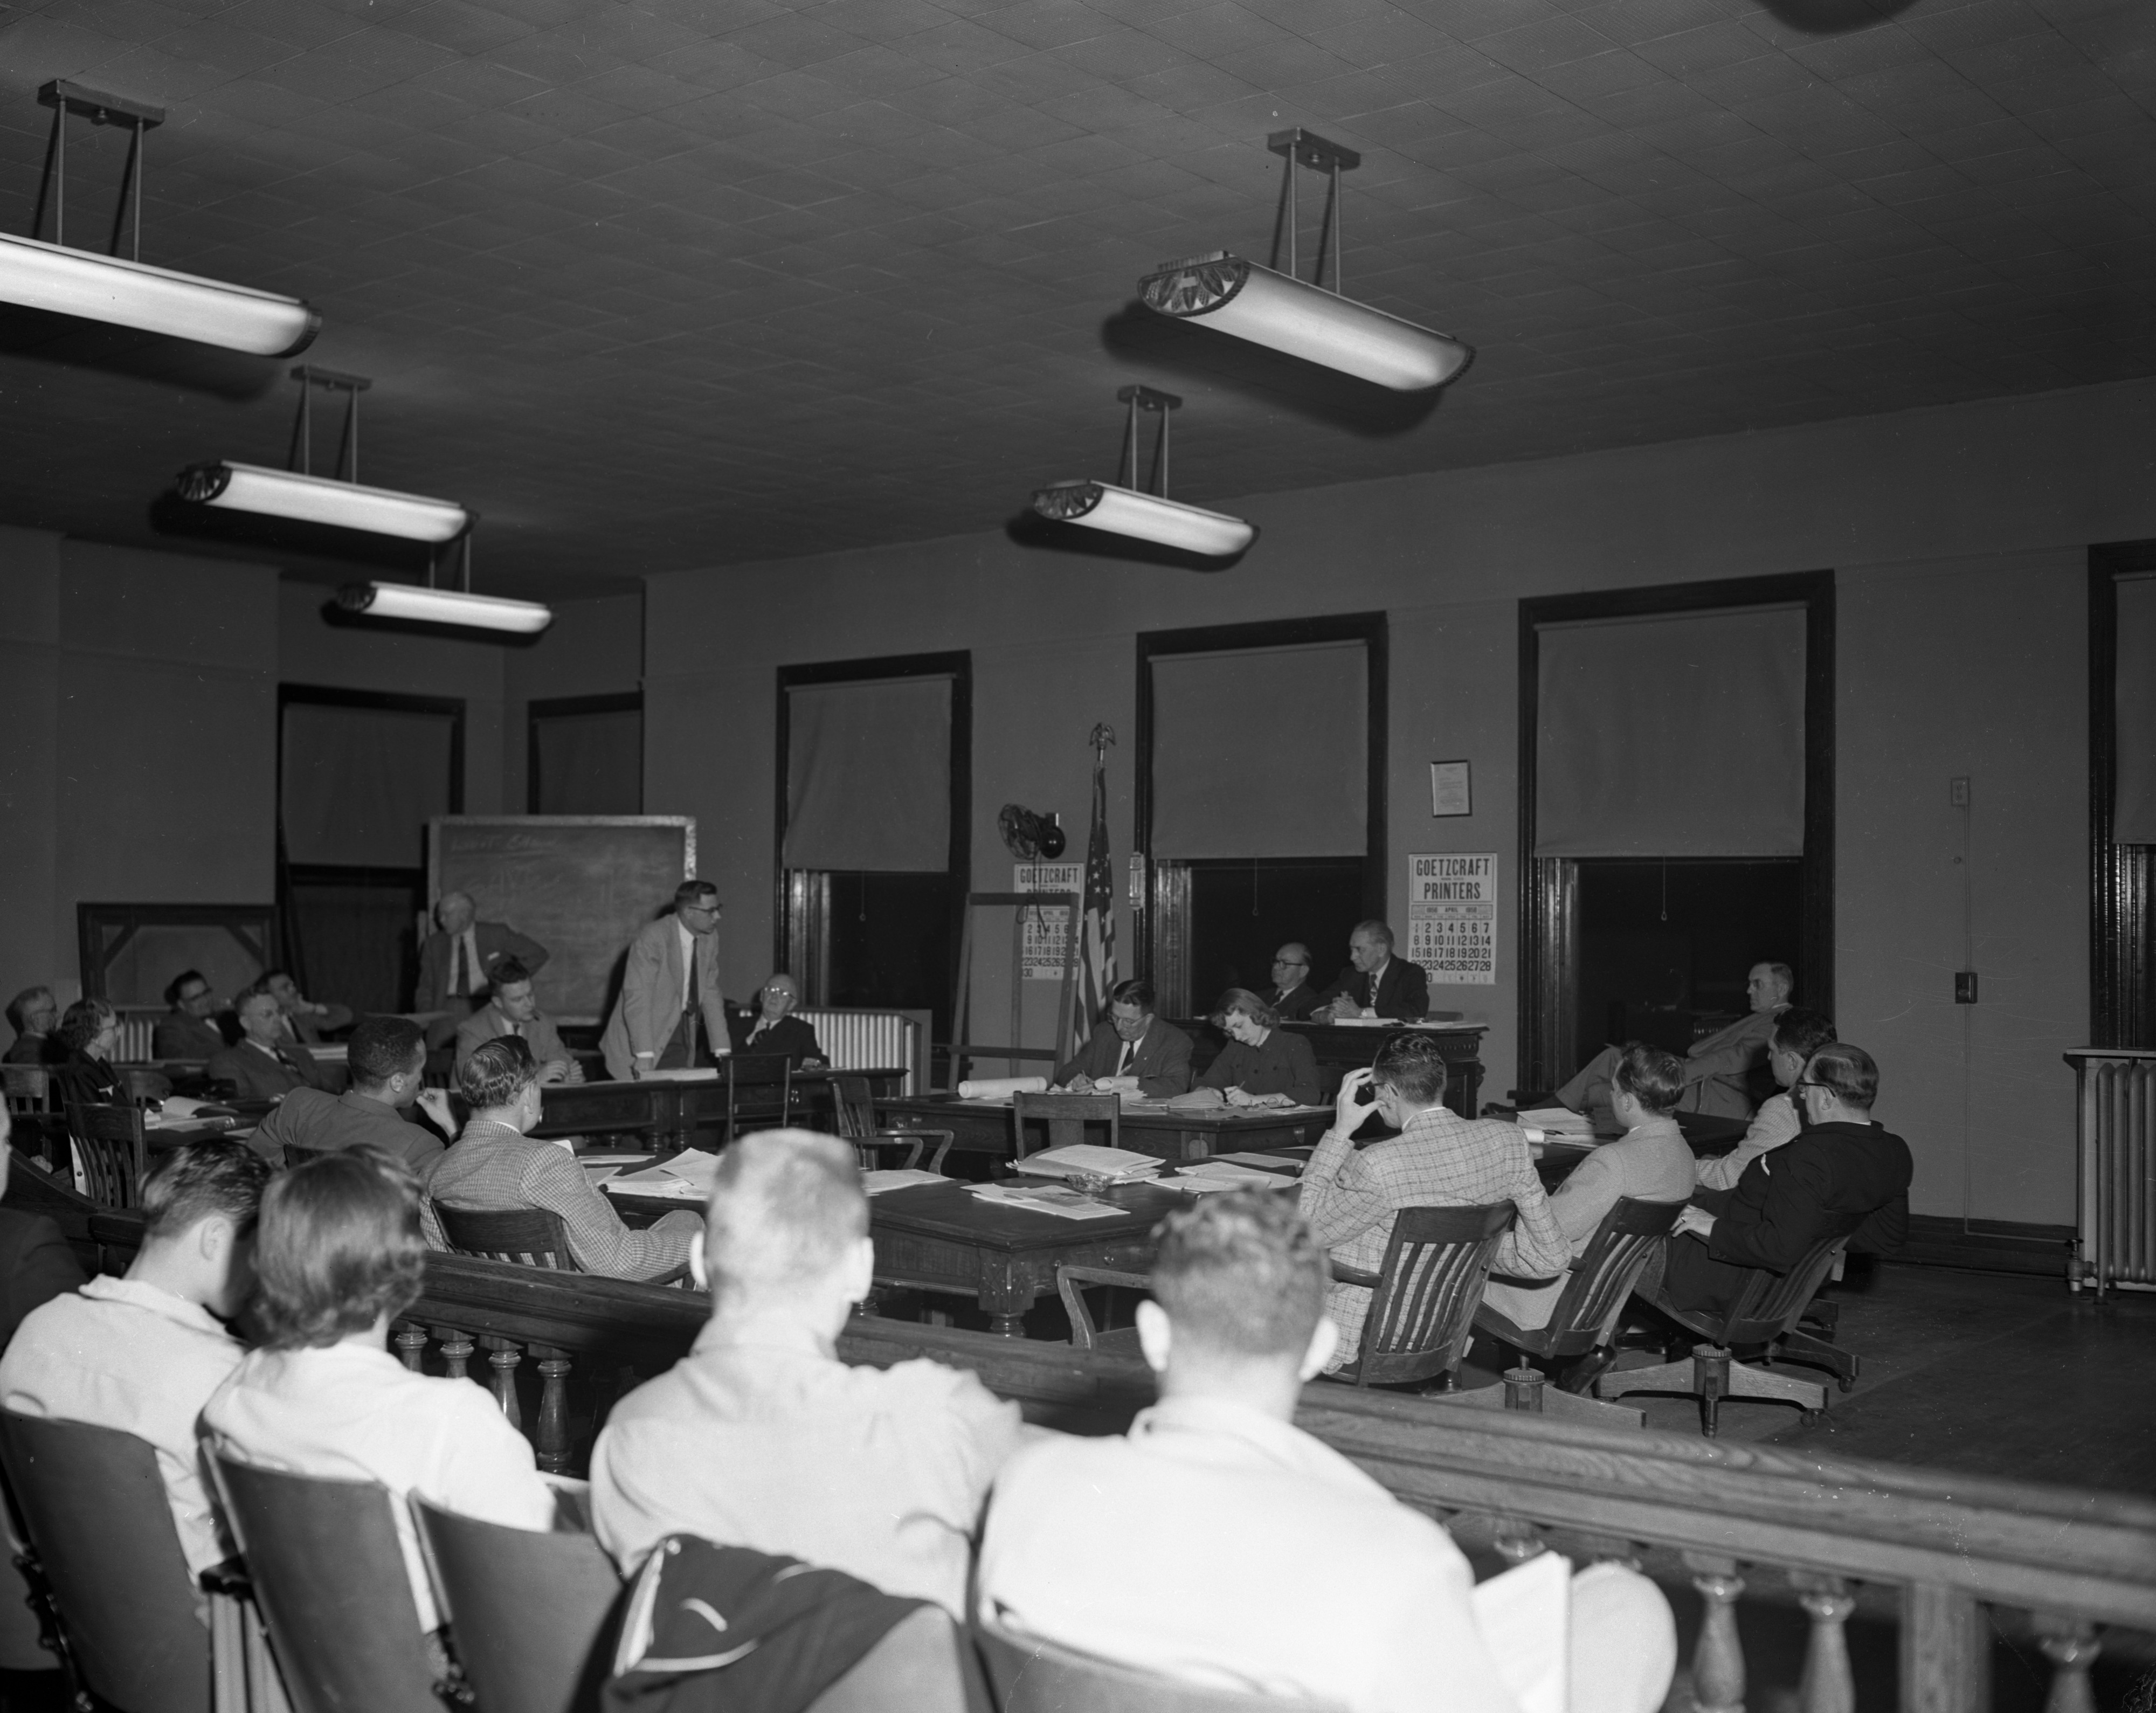 Last meeting of Old City Council charter, April 1956 image